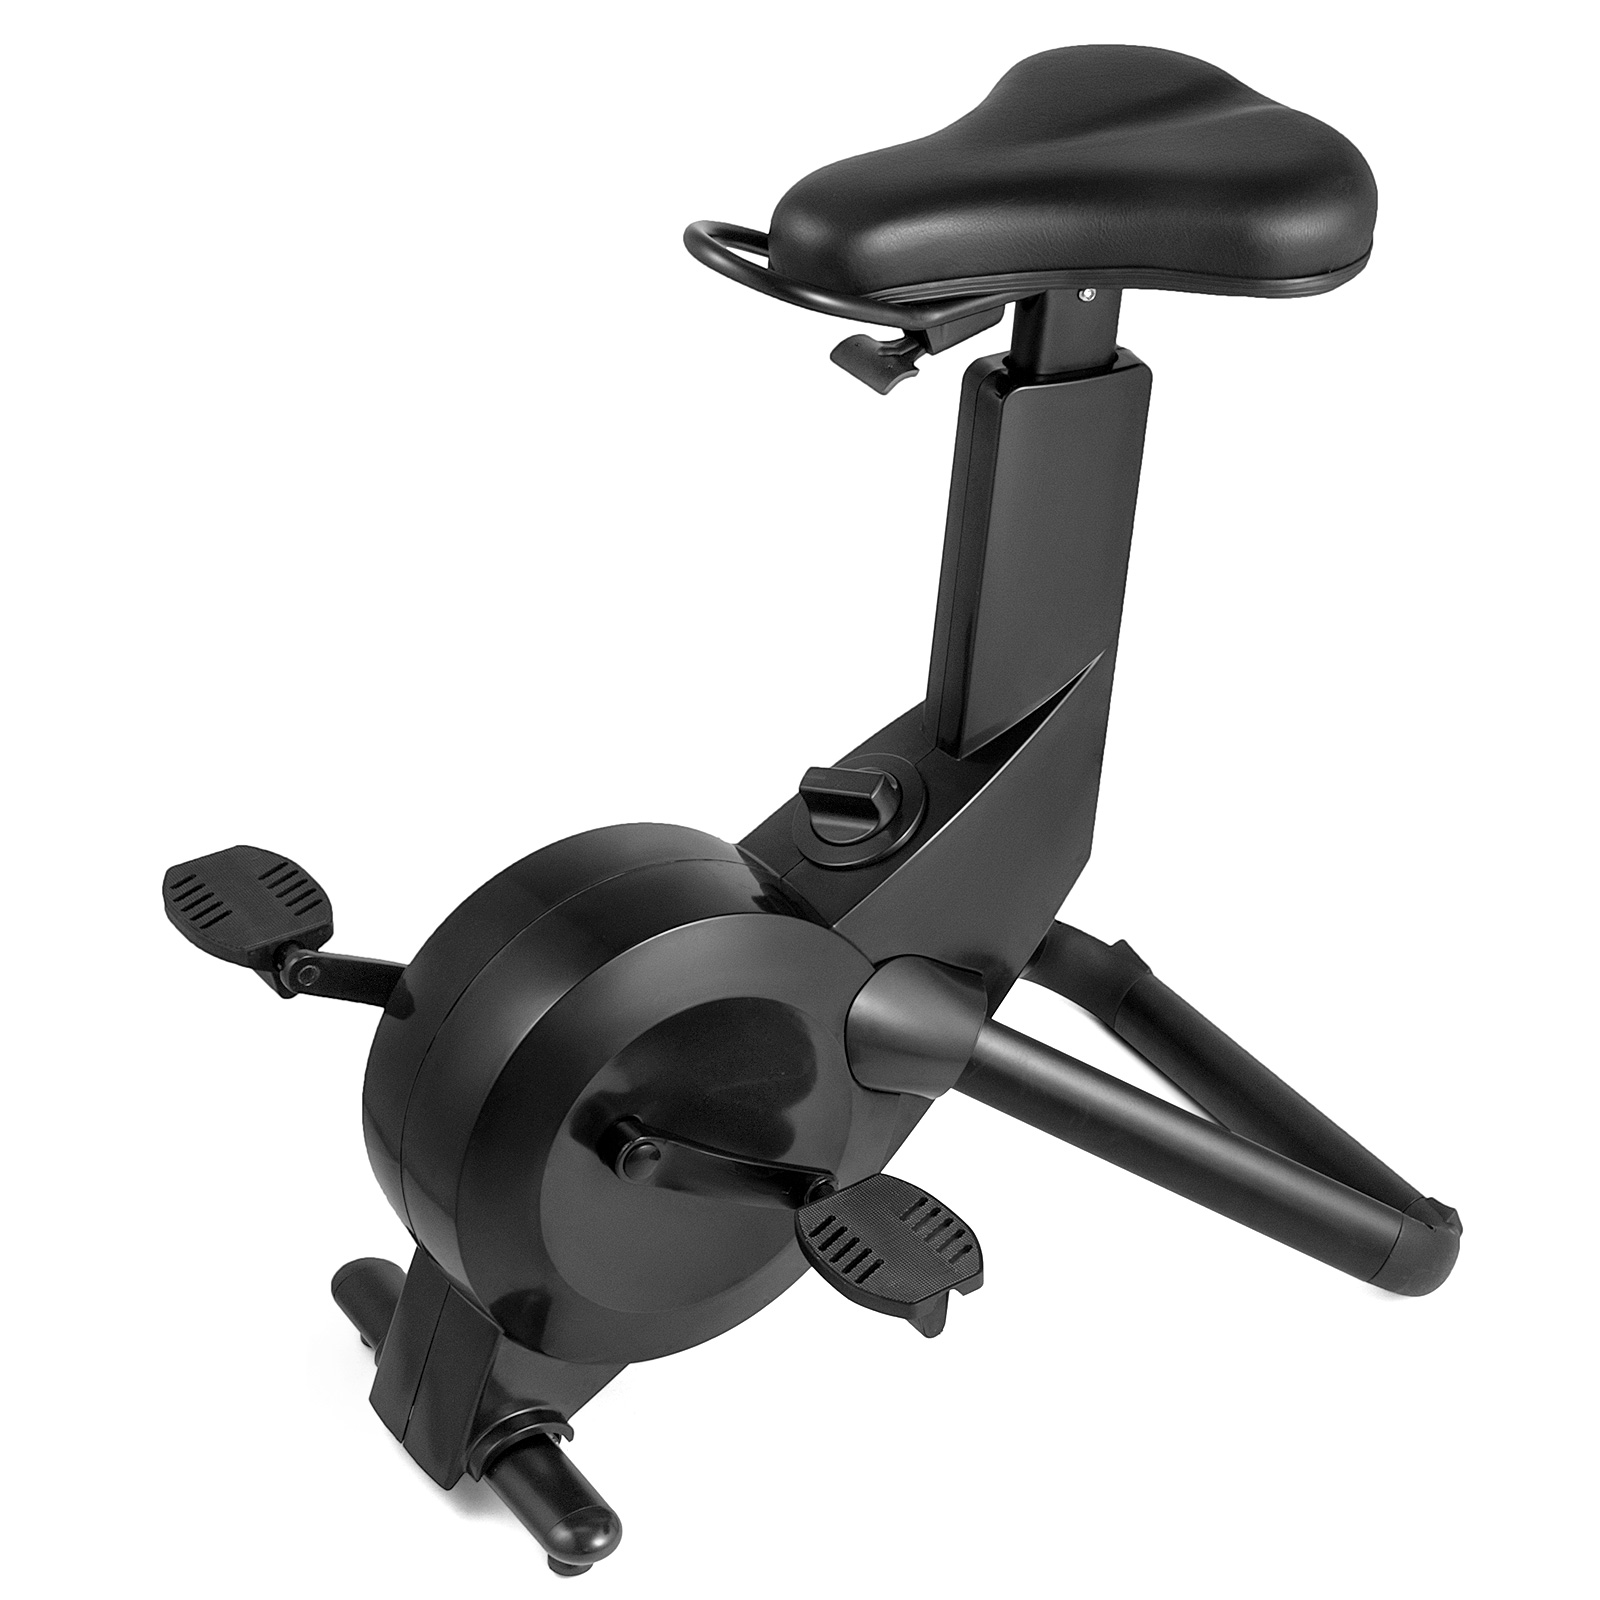 Multi-style-Magnetic-Exercise-Bike-office-Bicycle-under-Desk-Fitness-Cardio miniature 106